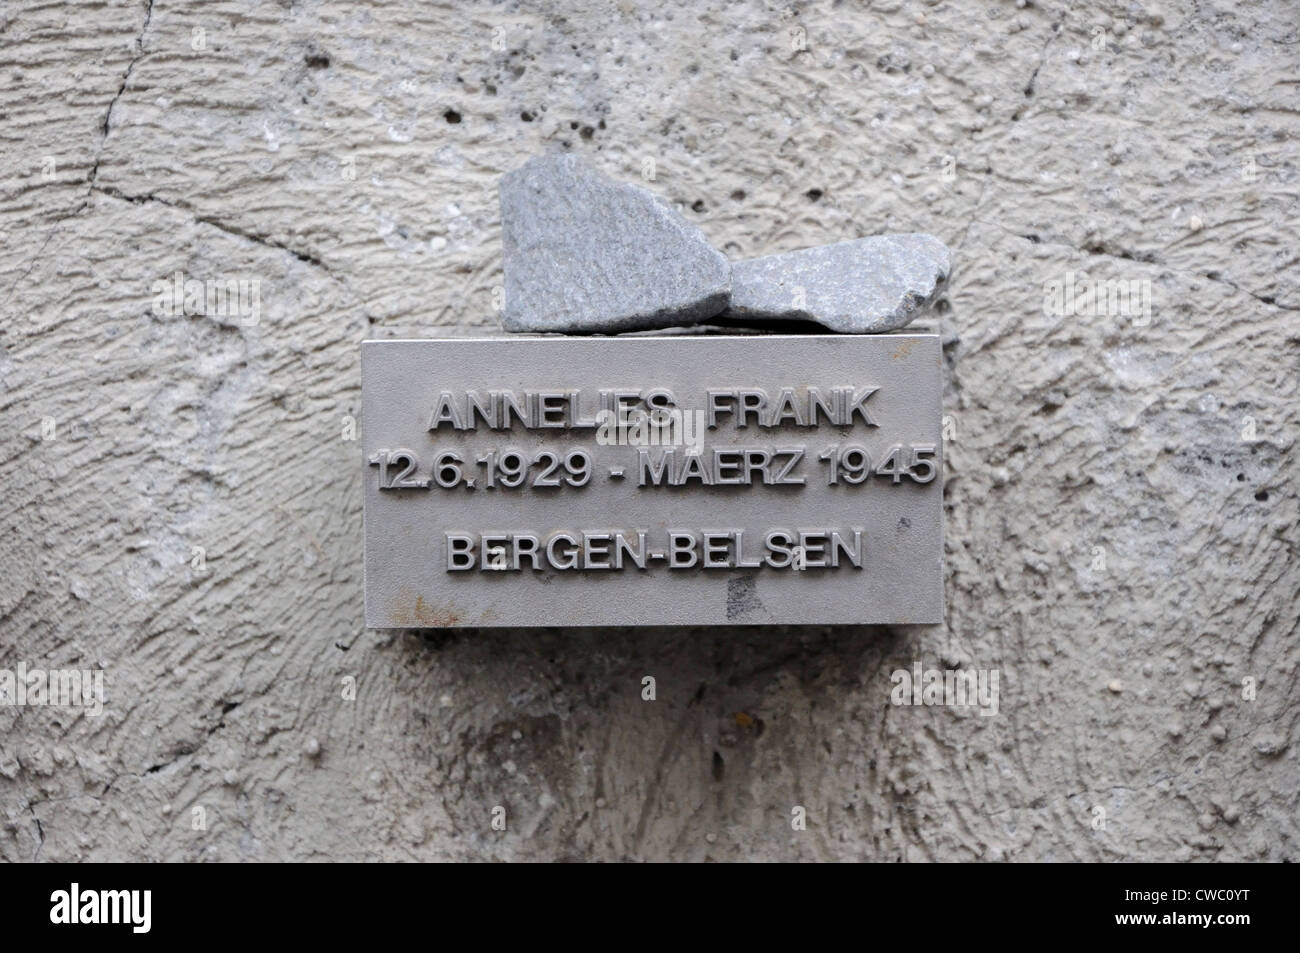 Memorial to Anne Frank who was born in Frankfurt, Germany in 1929 and died in Bergen-Belsen concentration camp in - Stock Image